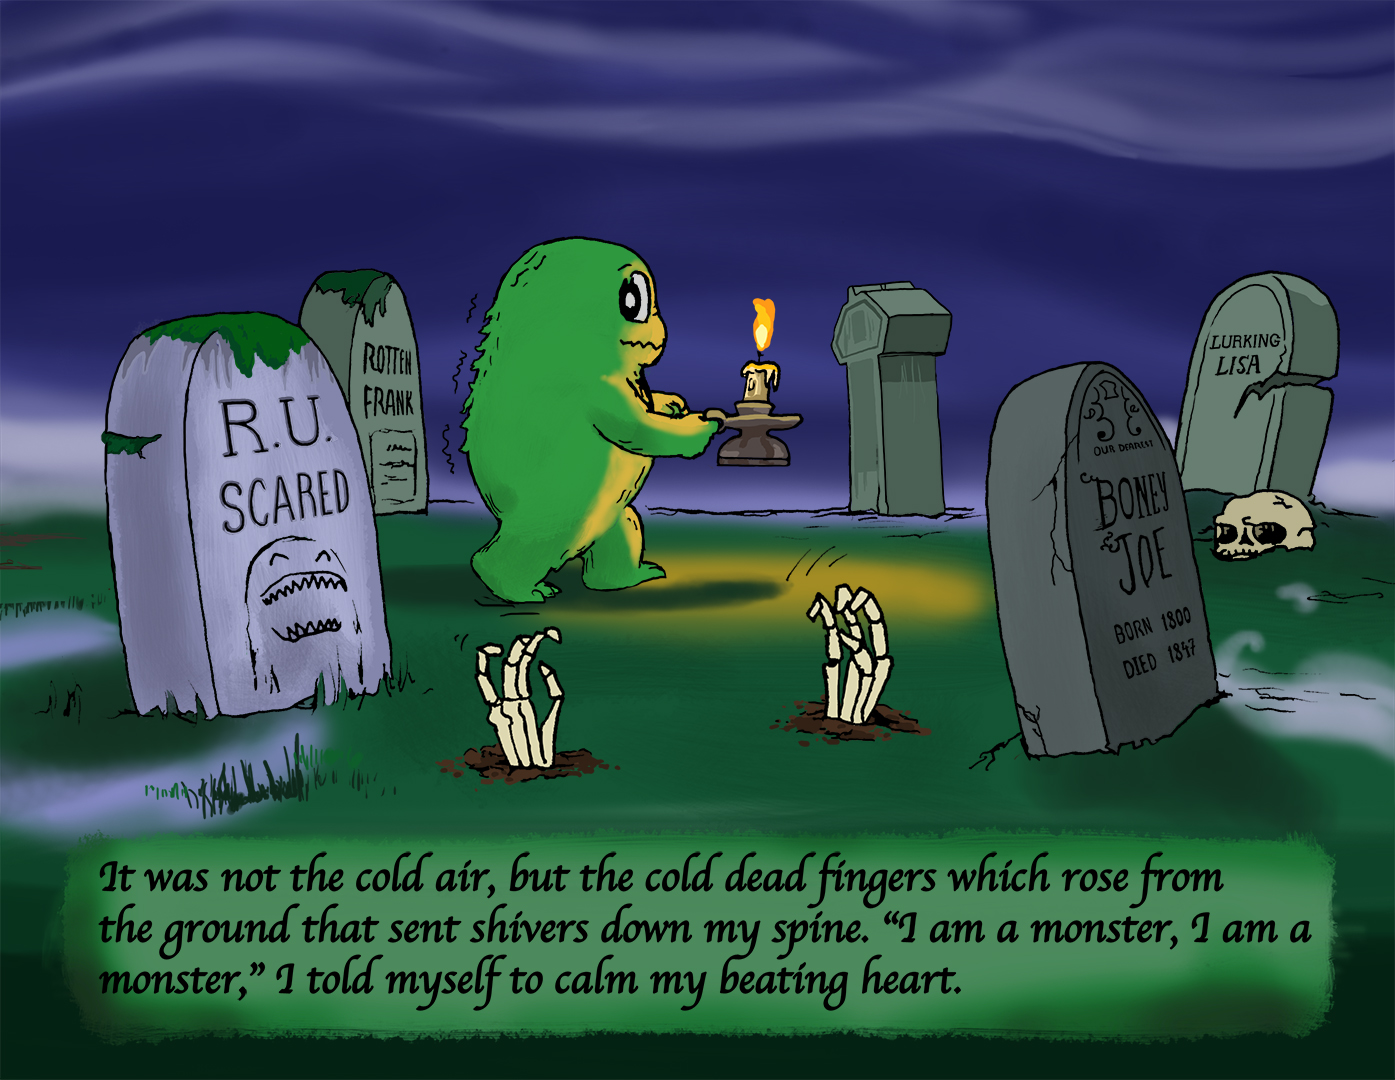 Swampy walks through a graveyard in the night